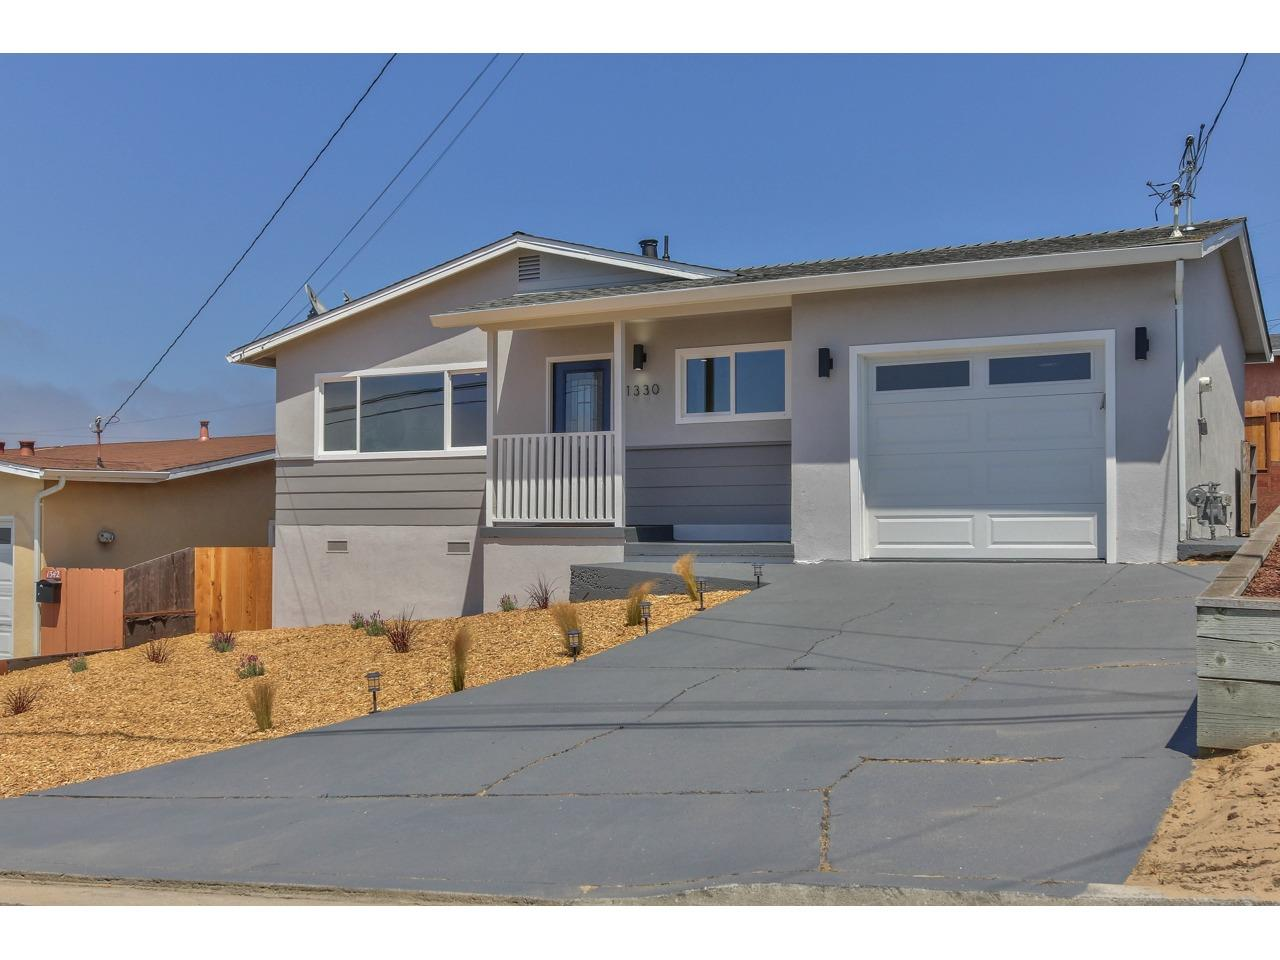 Photo of 1330 Flores ST, SEASIDE, CA 93955